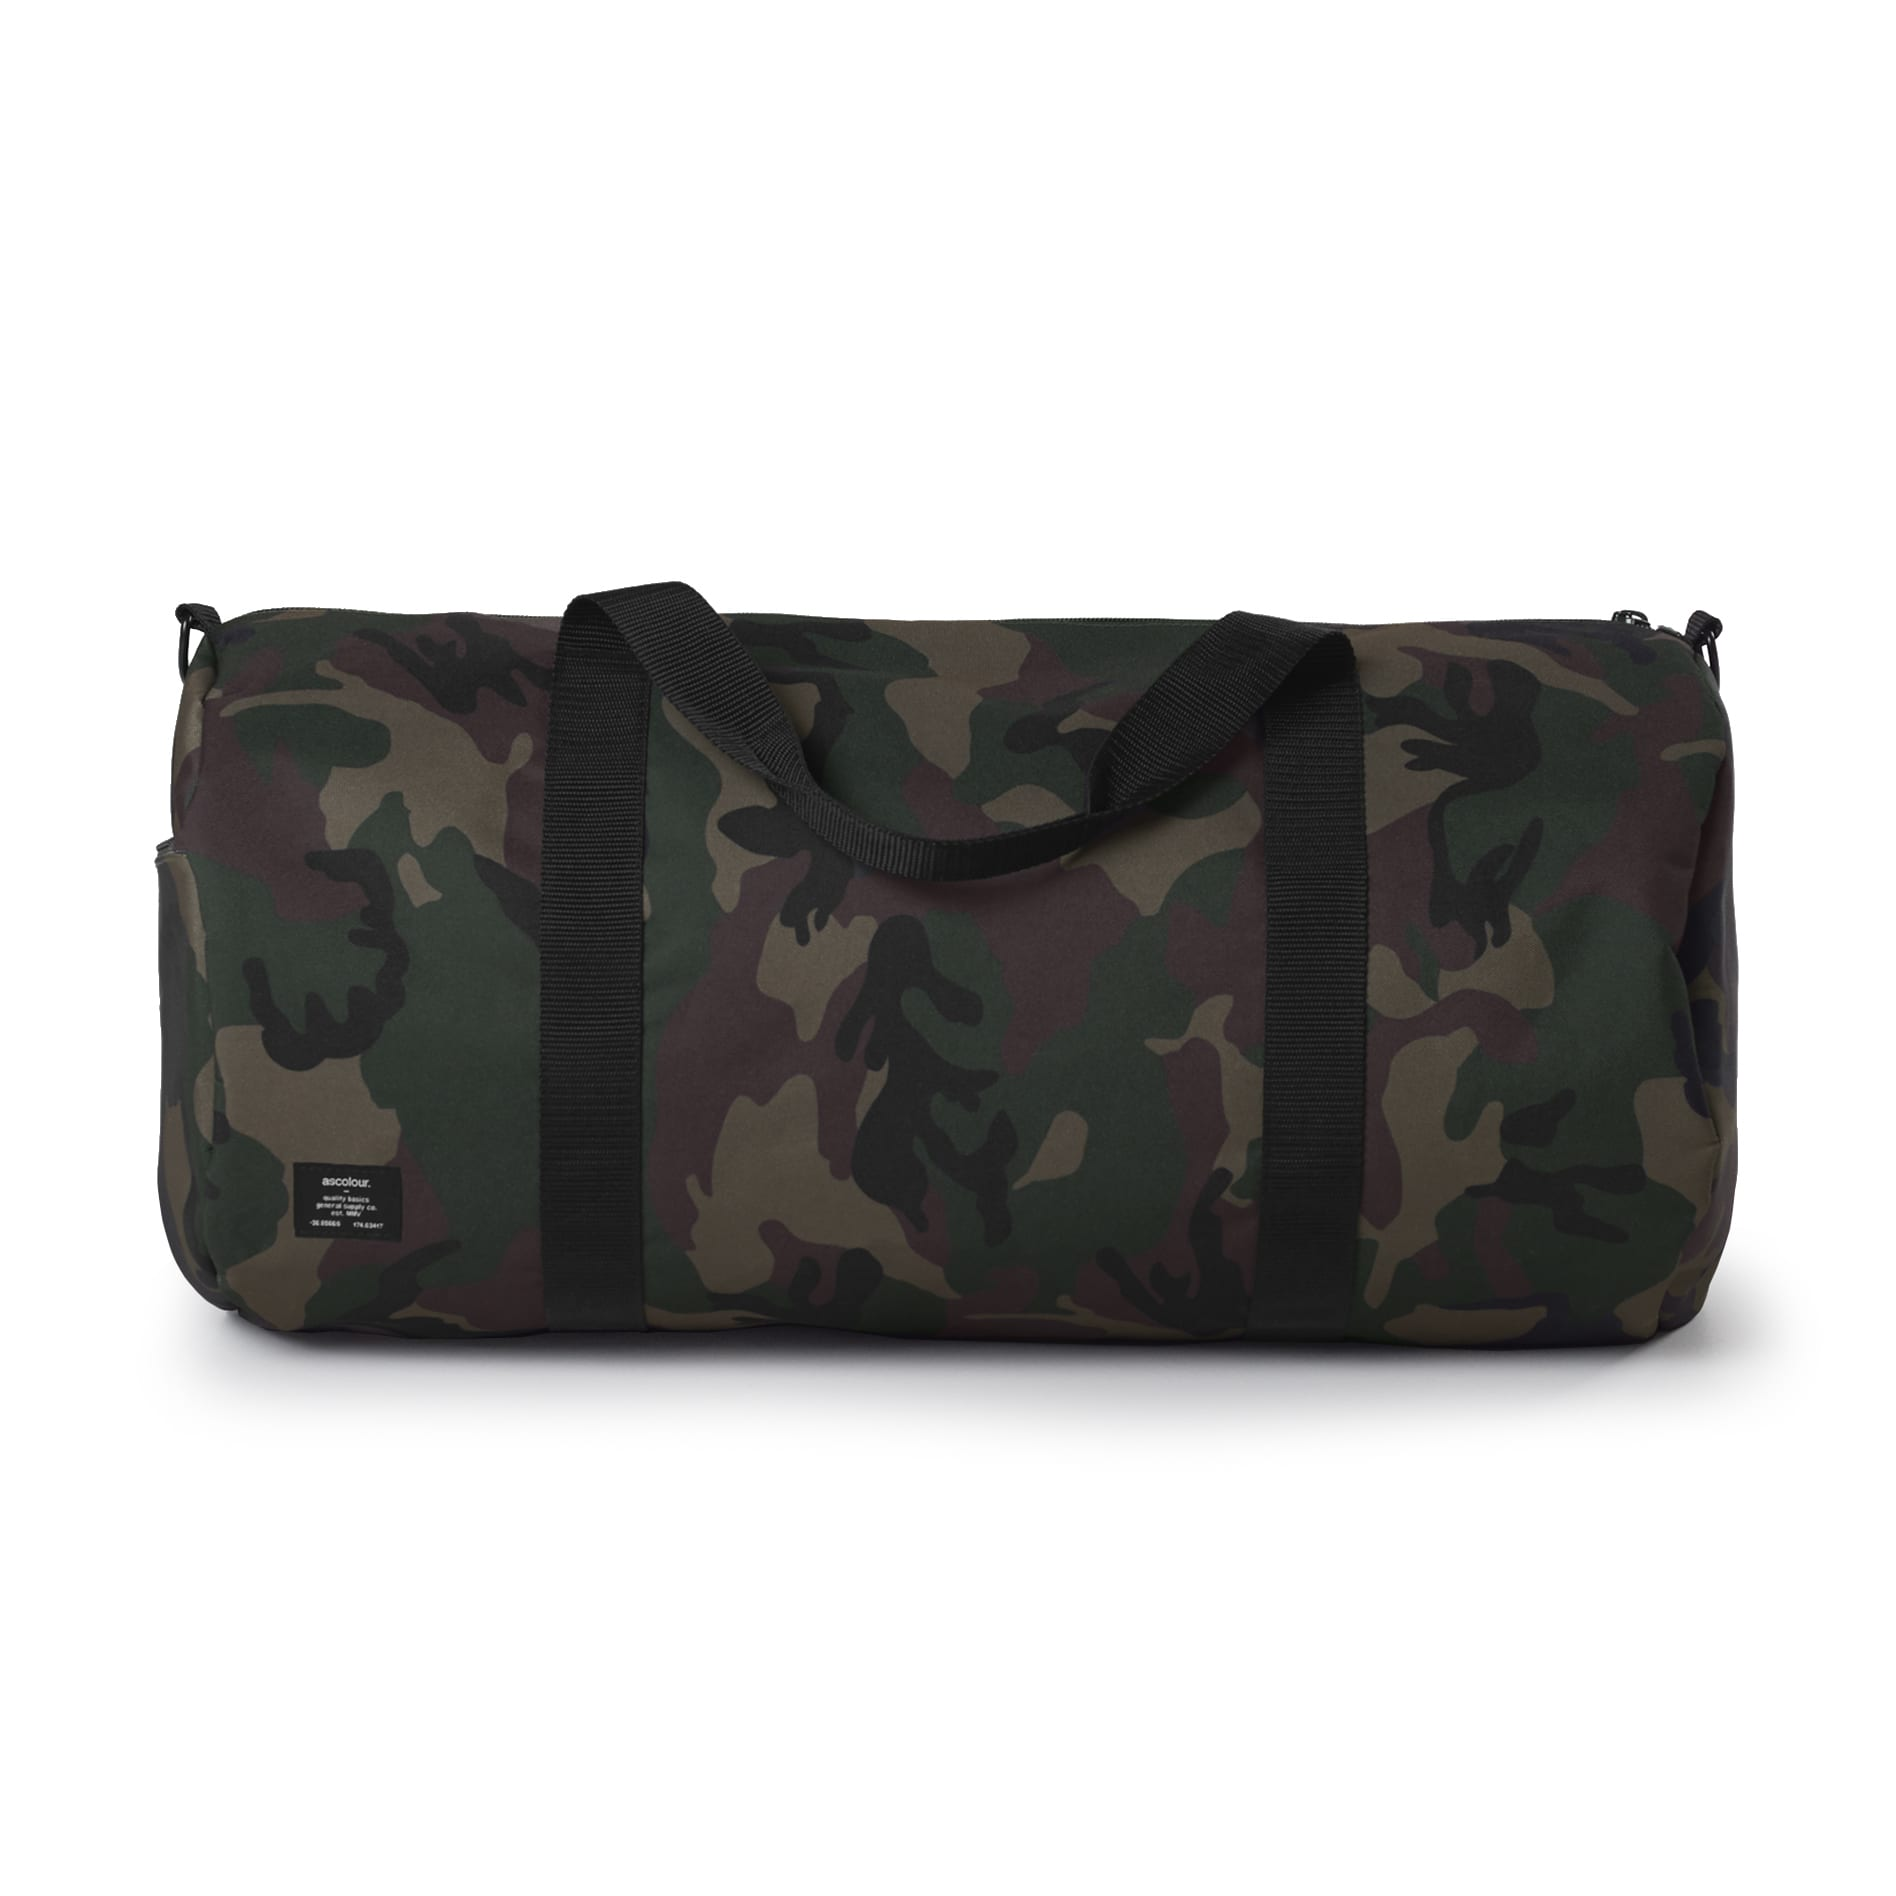 AS 1006 Area Camo Duffel Bag